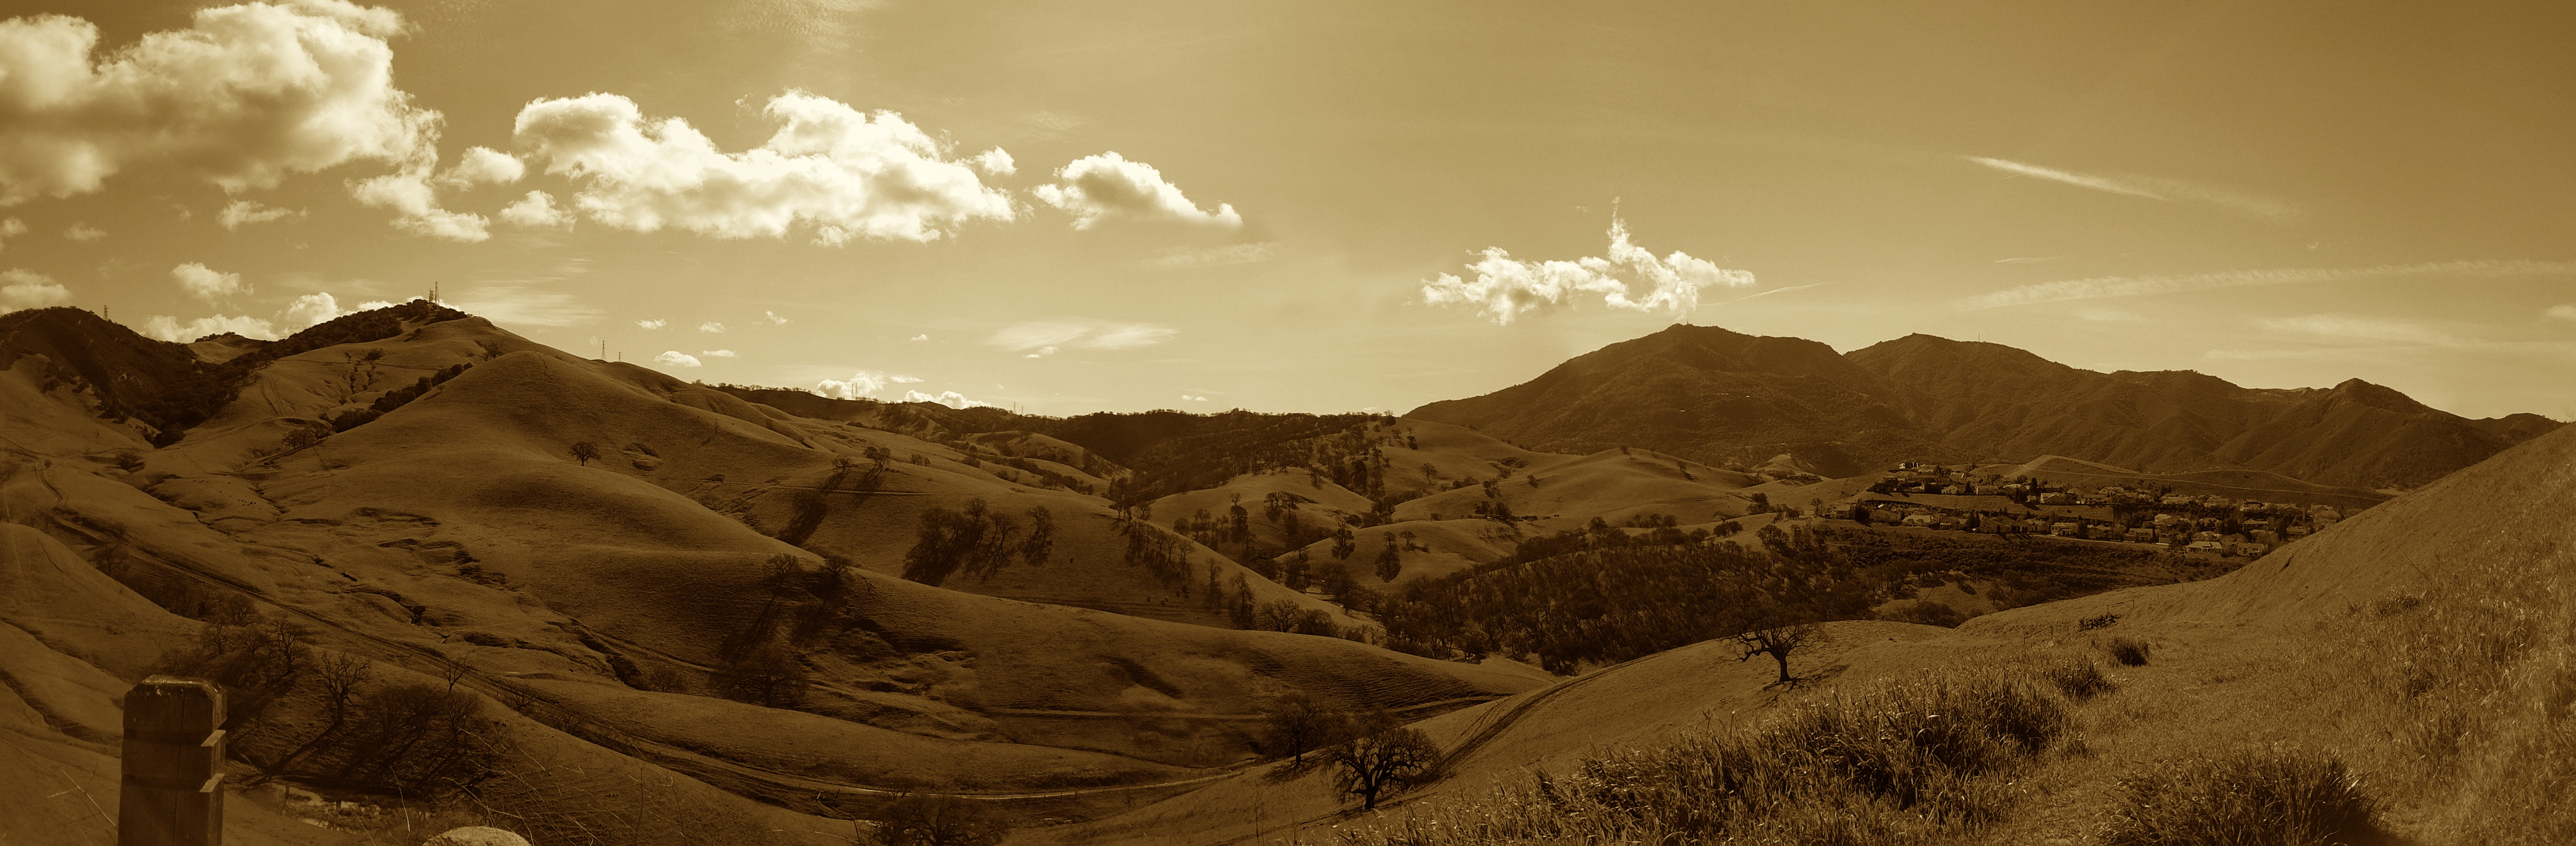 service-time-mountains-pano-sepia-2nd-edit